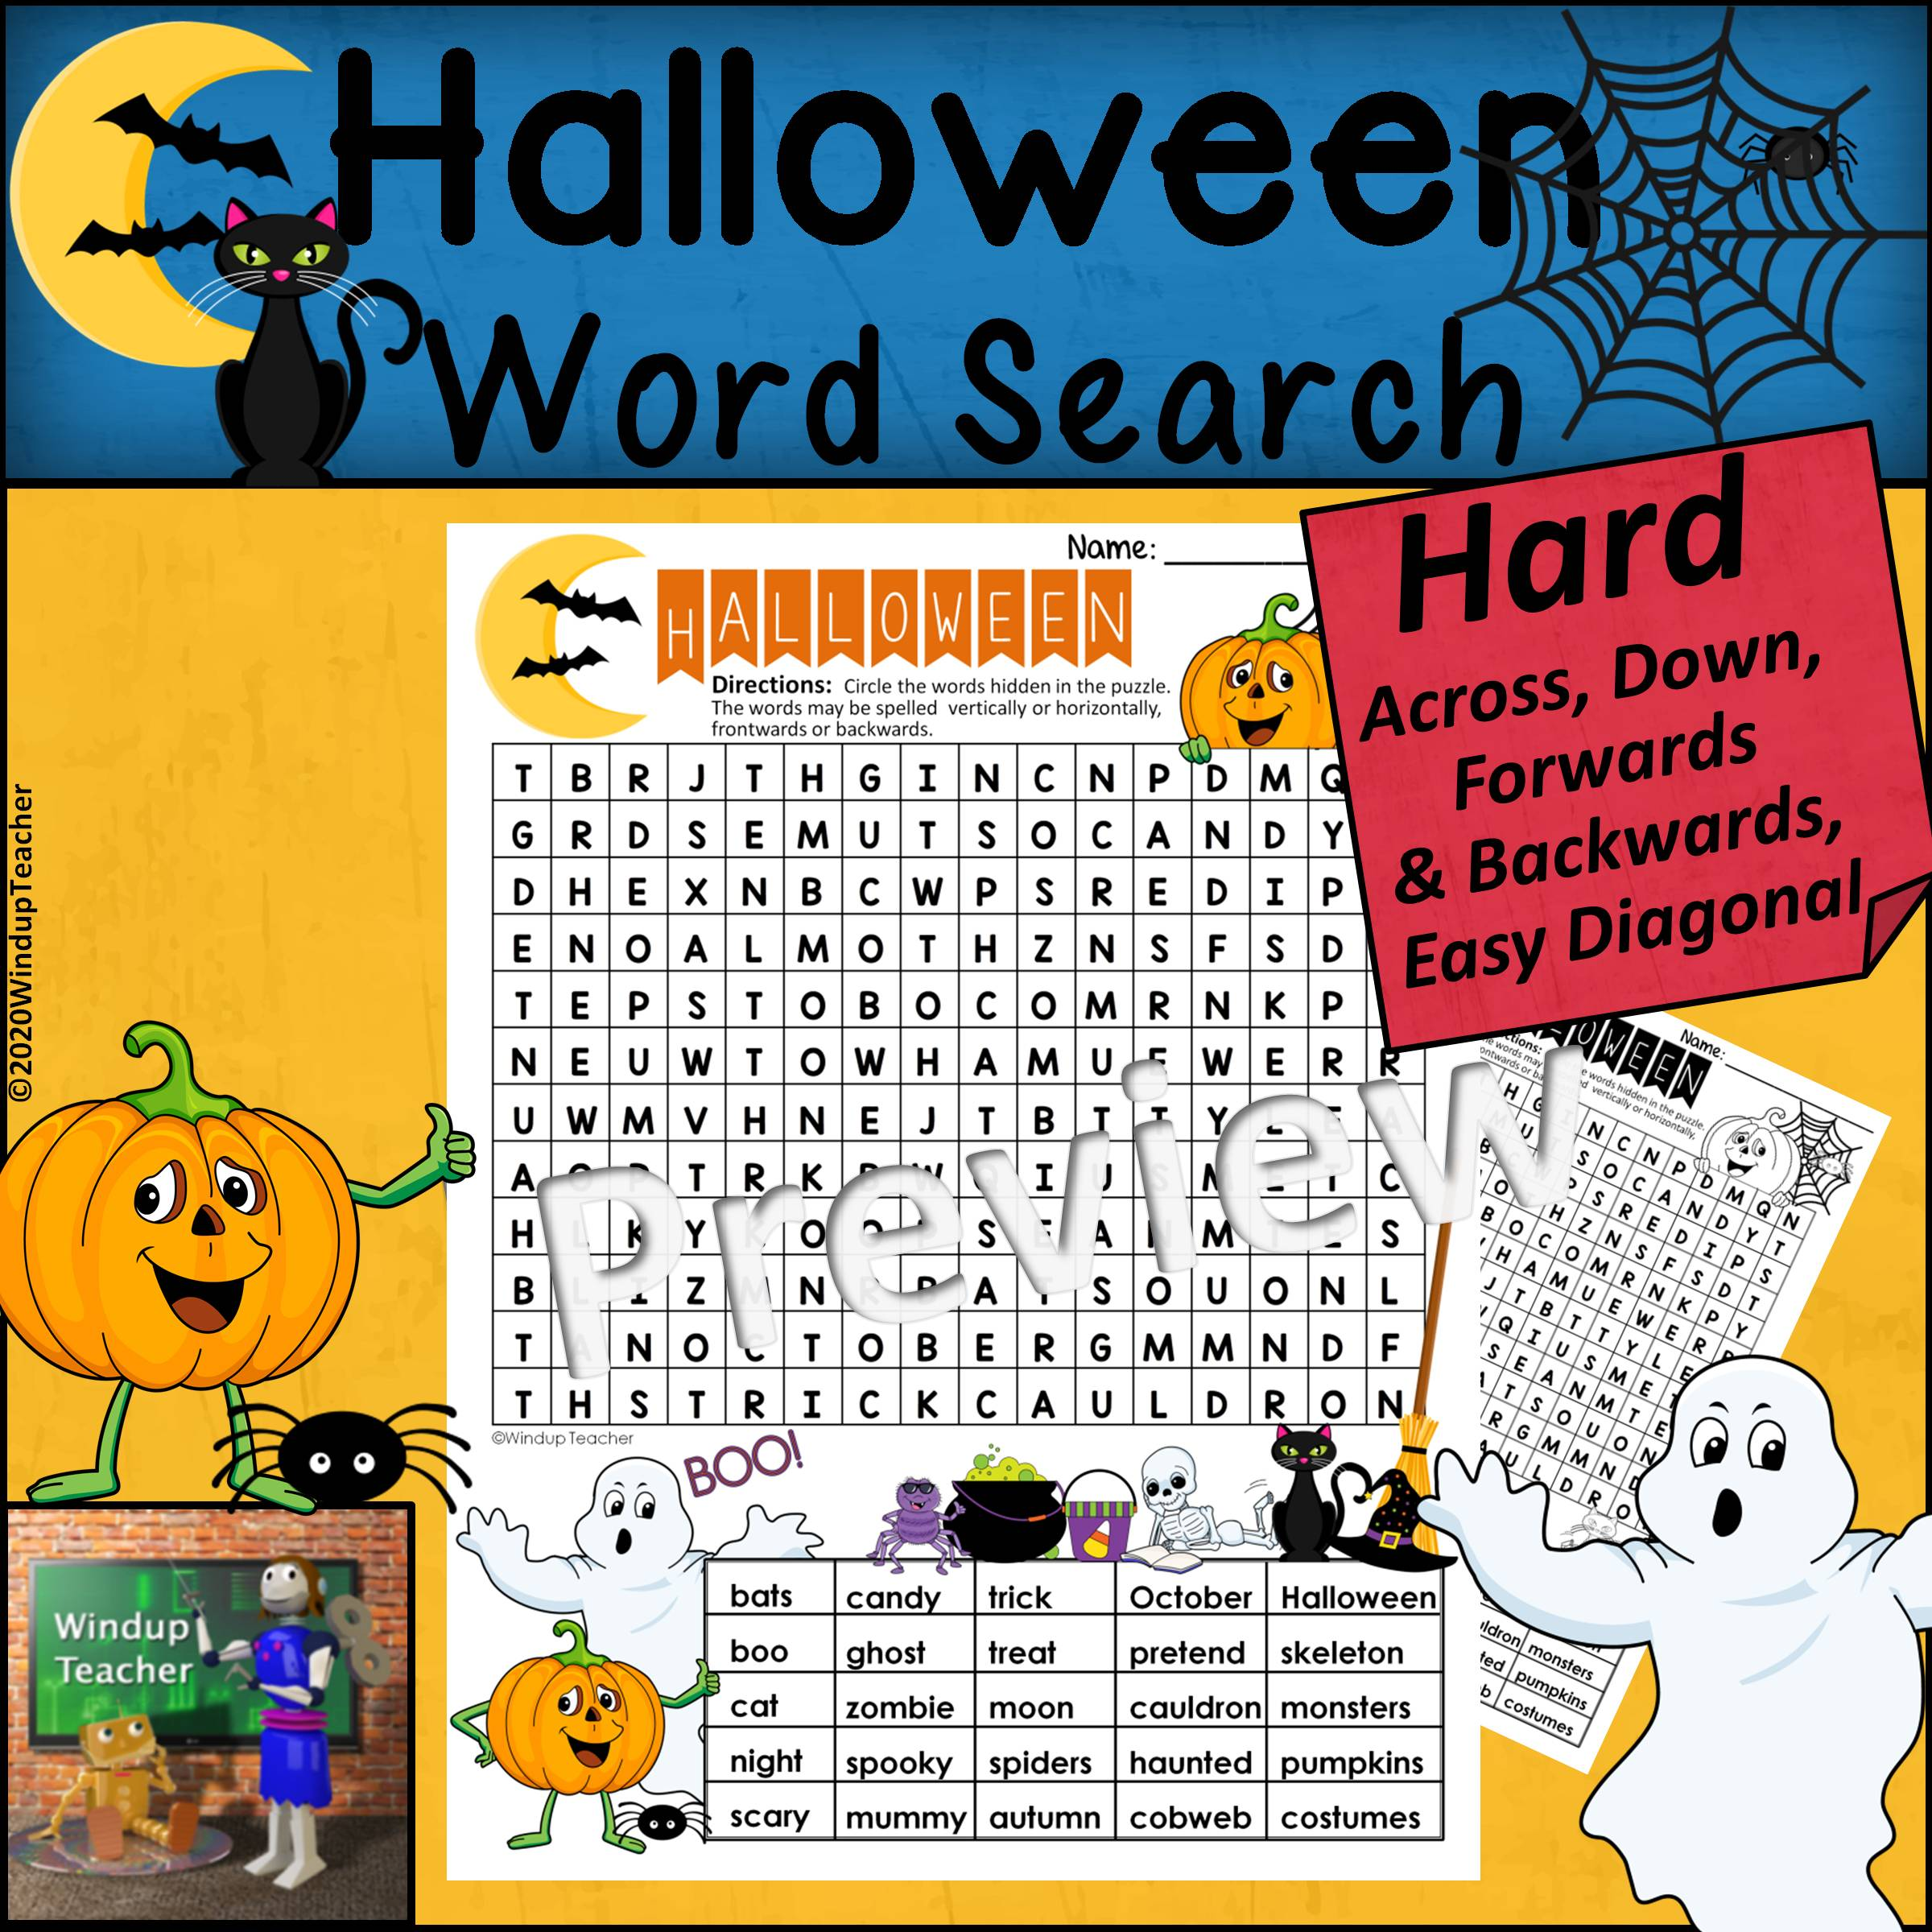 Halloween Word Search   HARD Puzzle   Ready to Go!